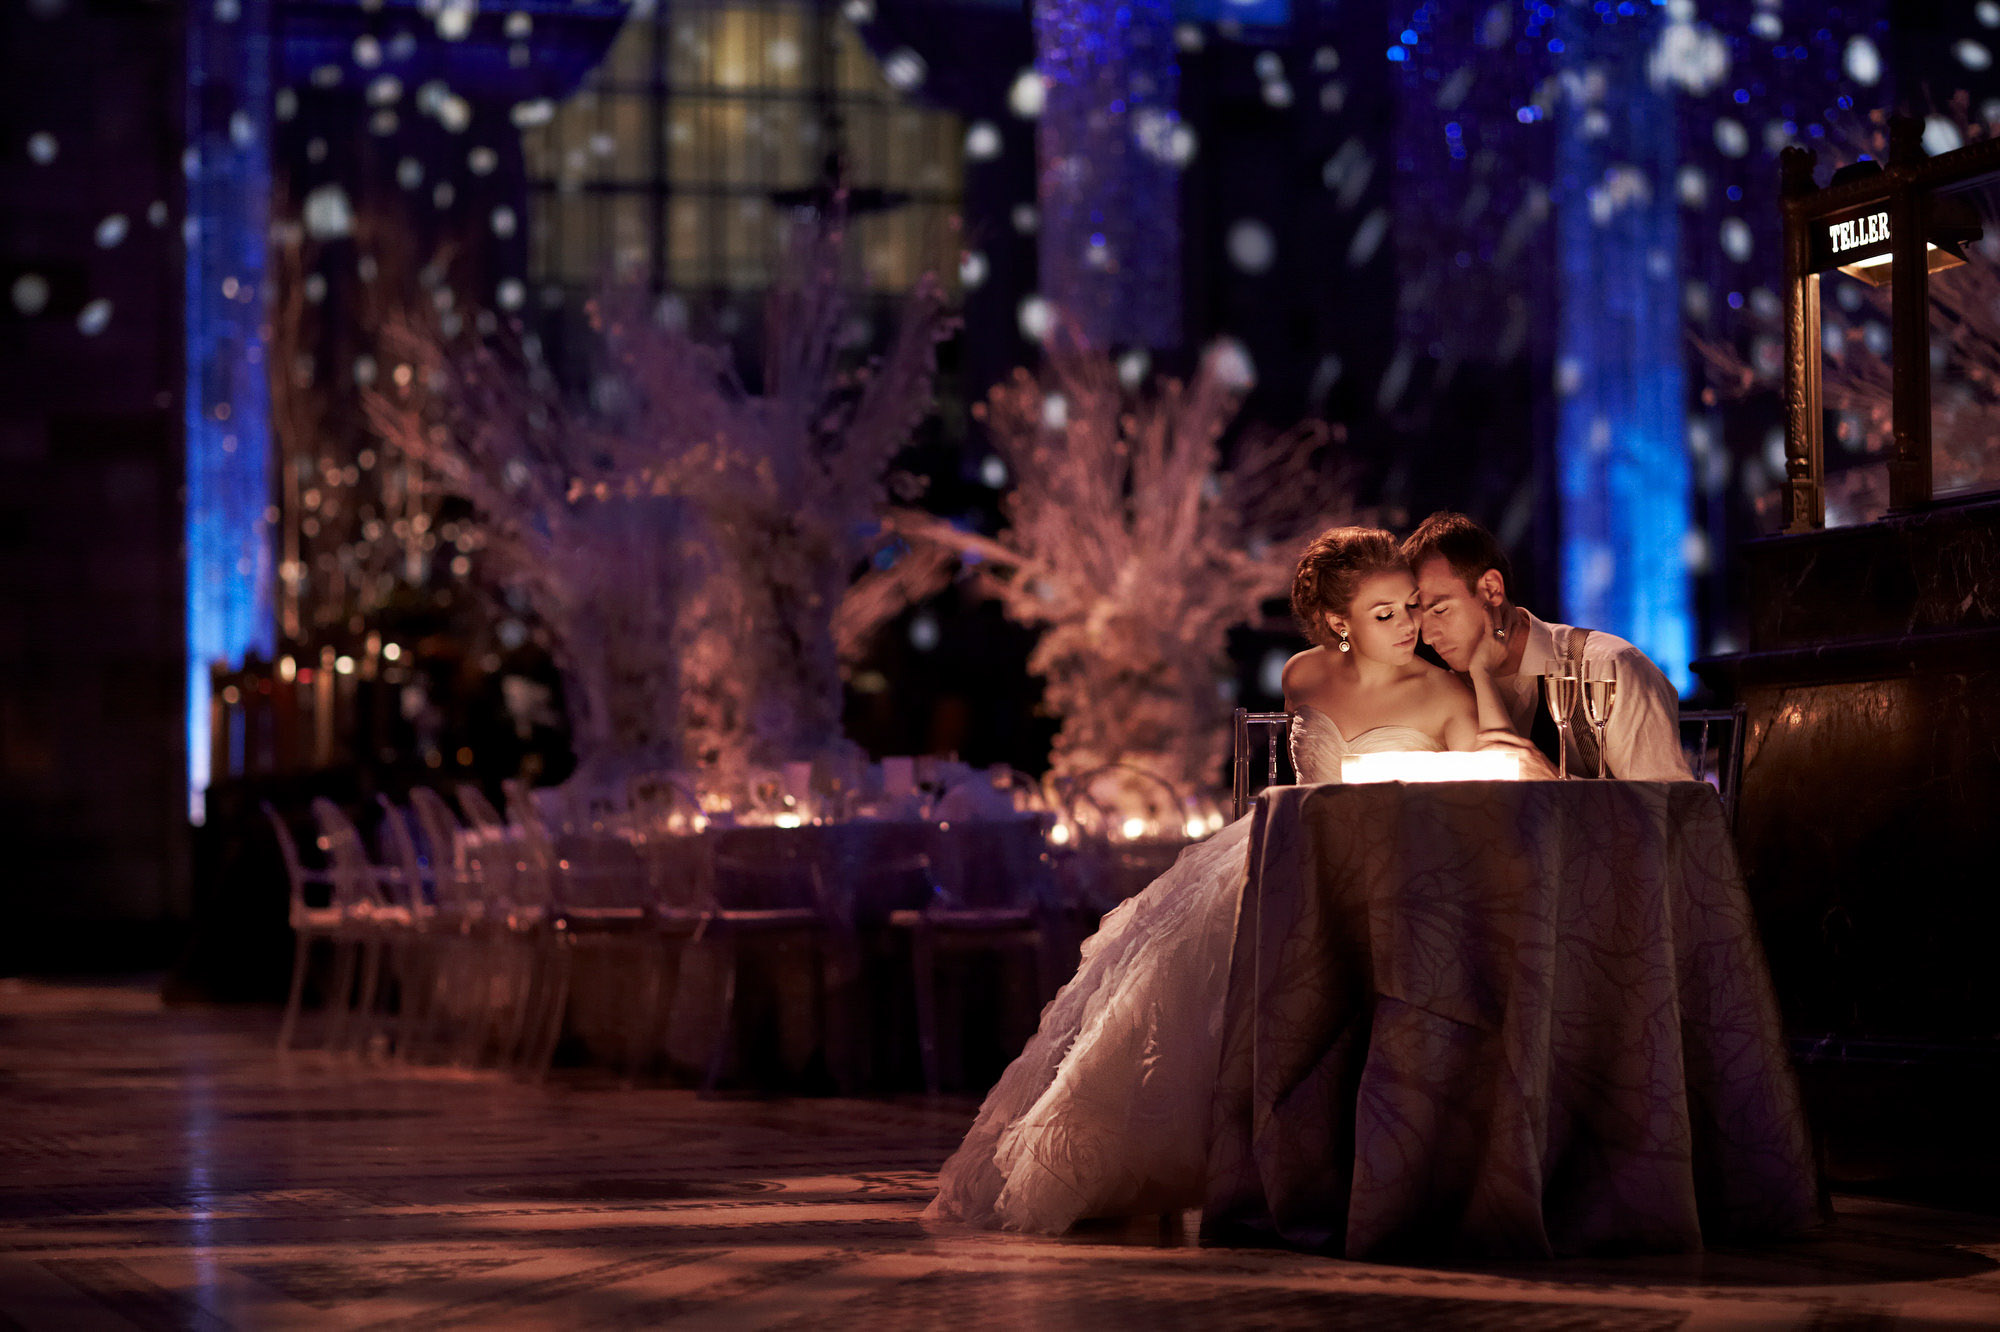 Couple embracing at their luxury table - photo by Jerry Ghionis